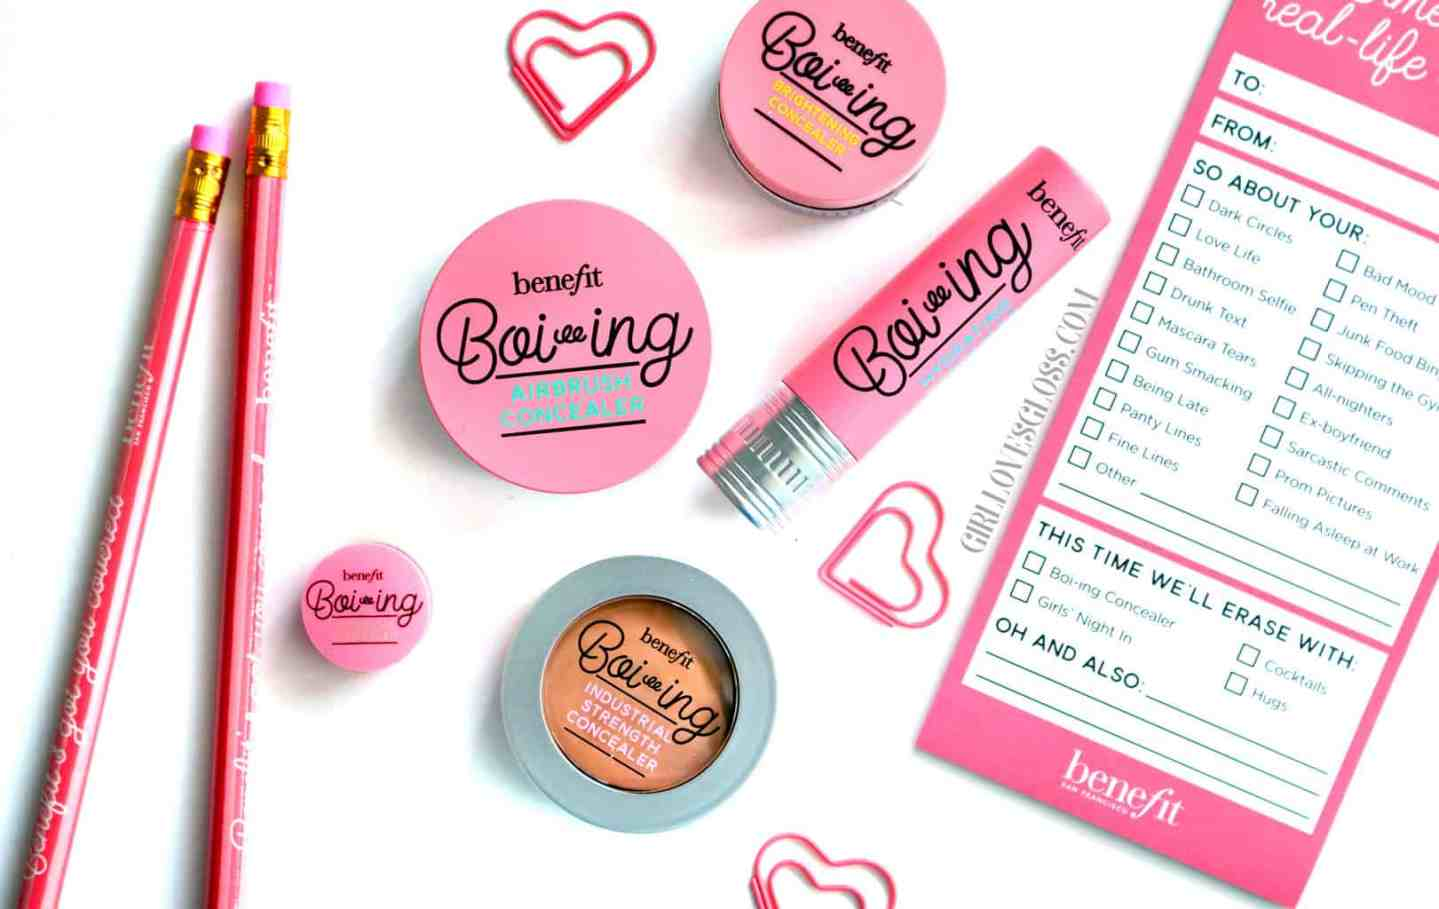 Benefit Boi-ing Concealer Revamp and Expansion